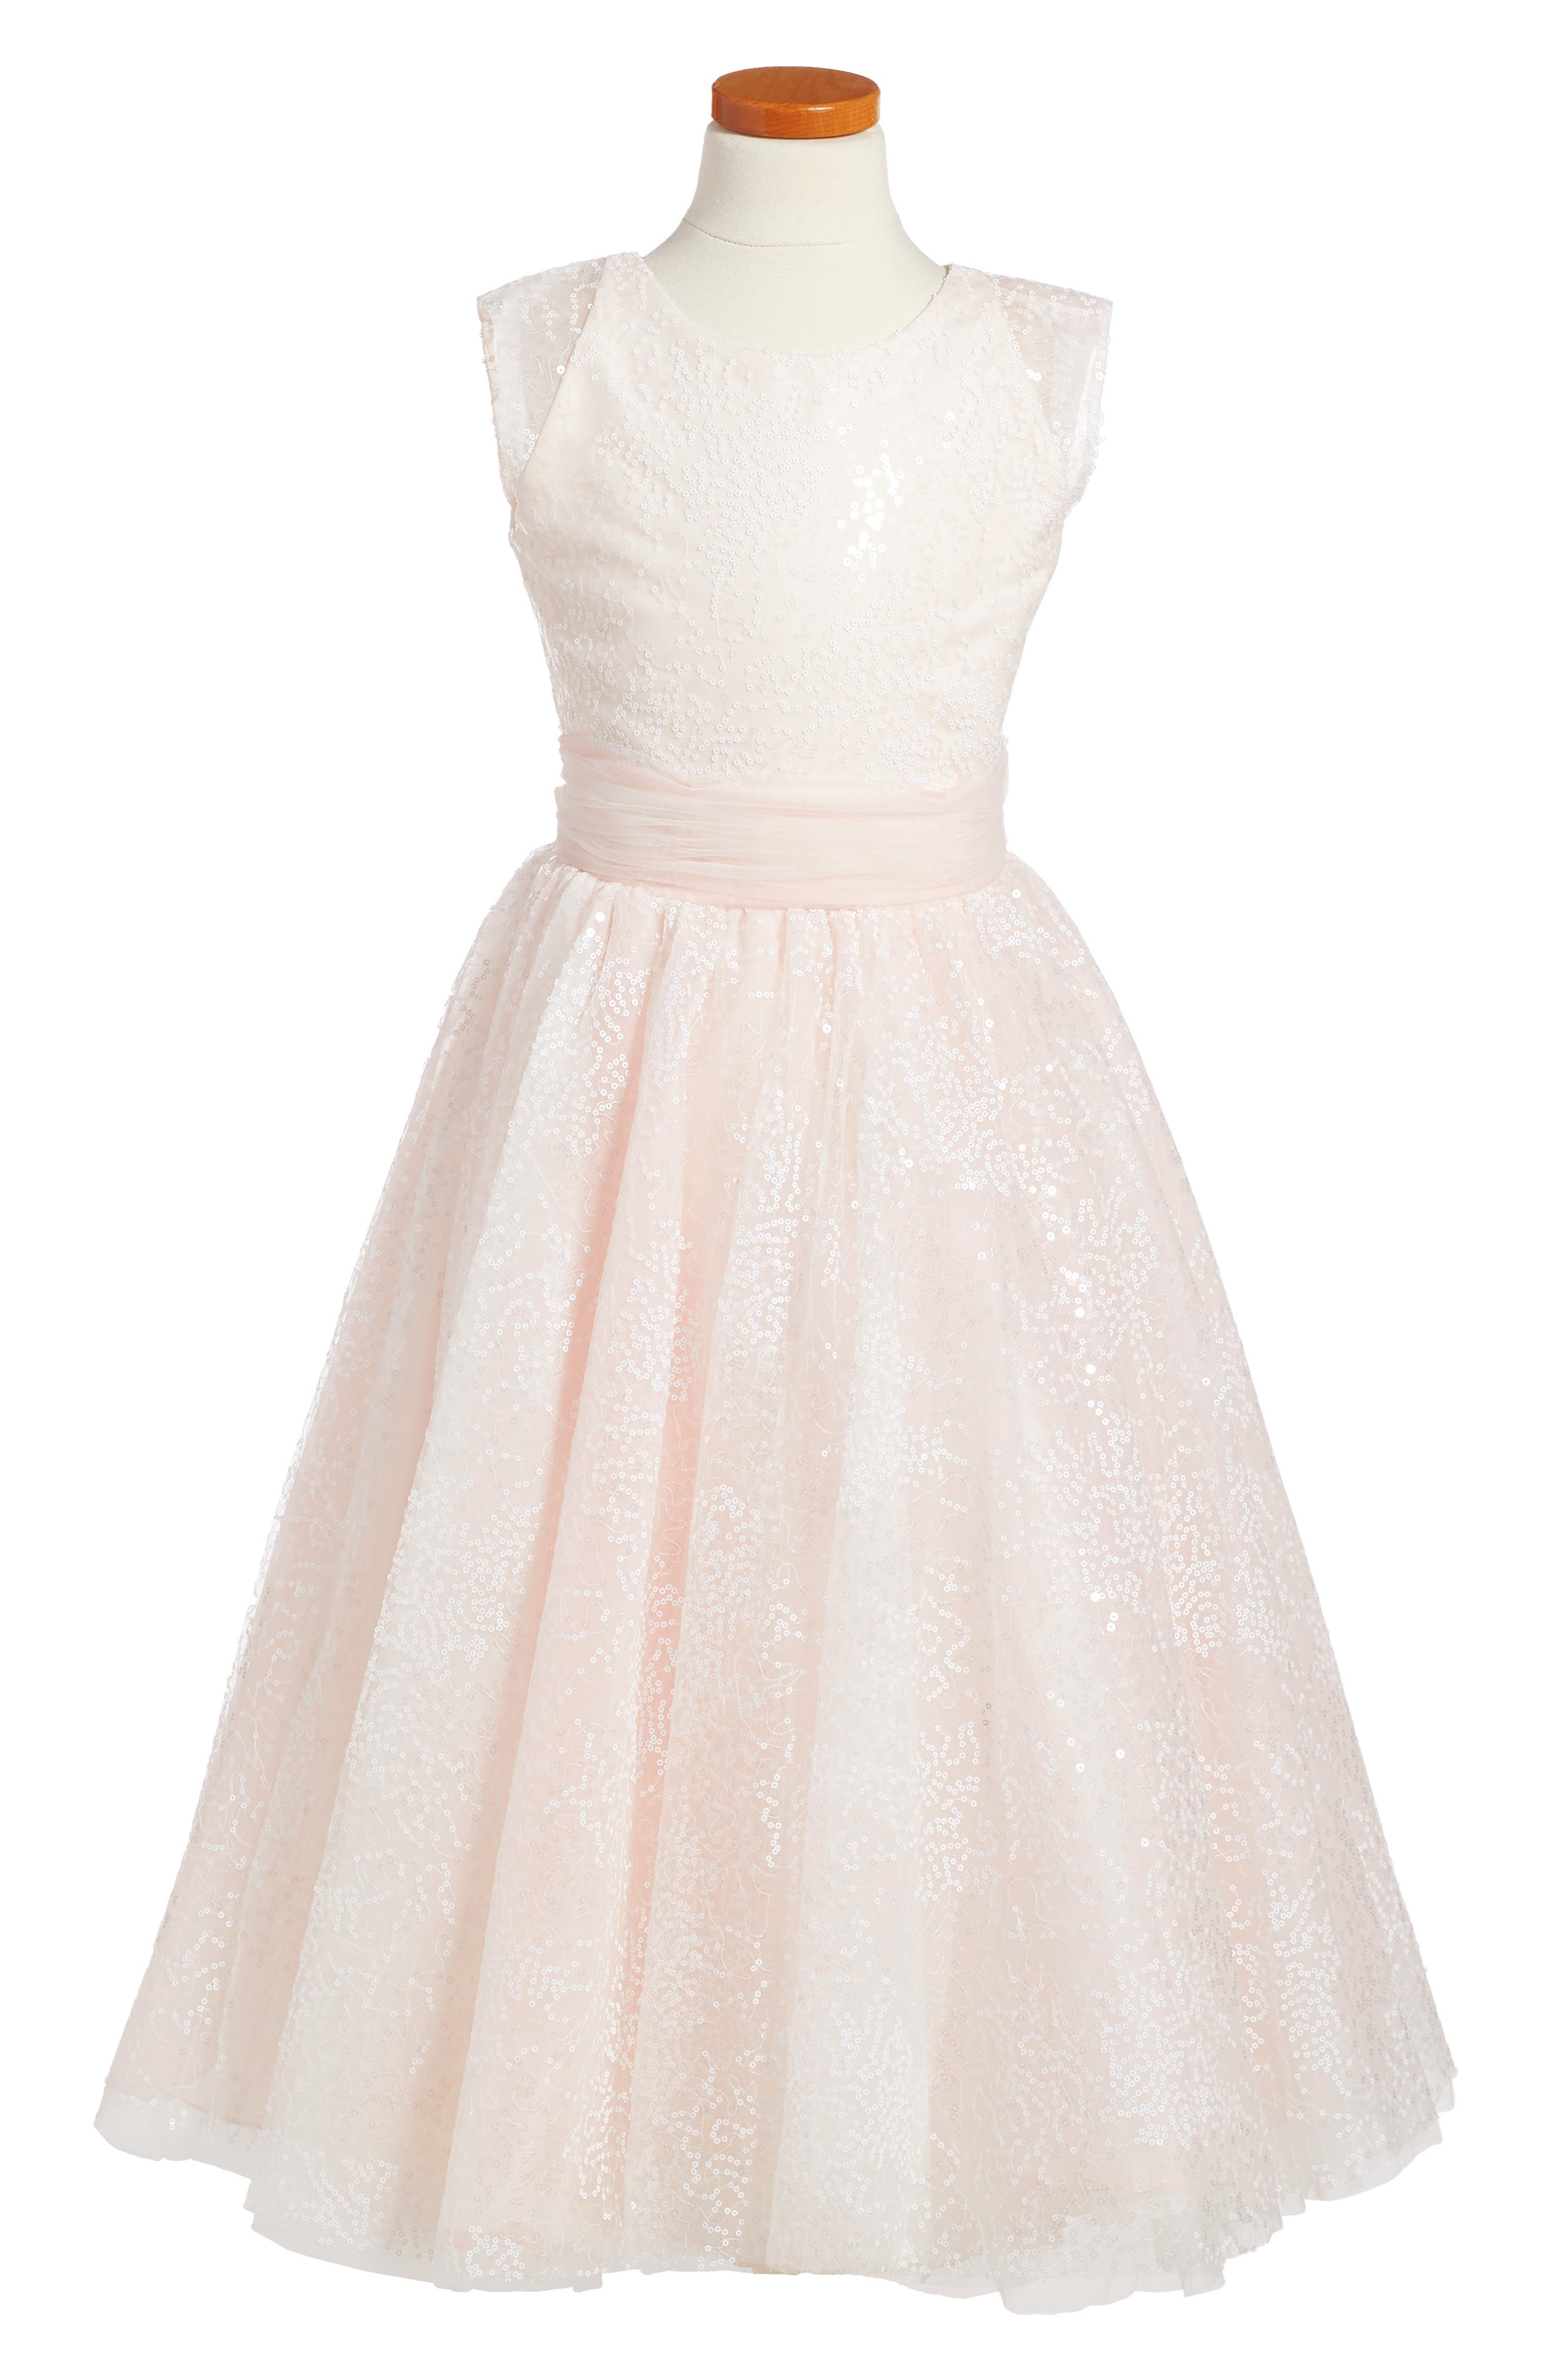 Sequin Tulle Dress,                         Main,                         color, IVORY/ PINK